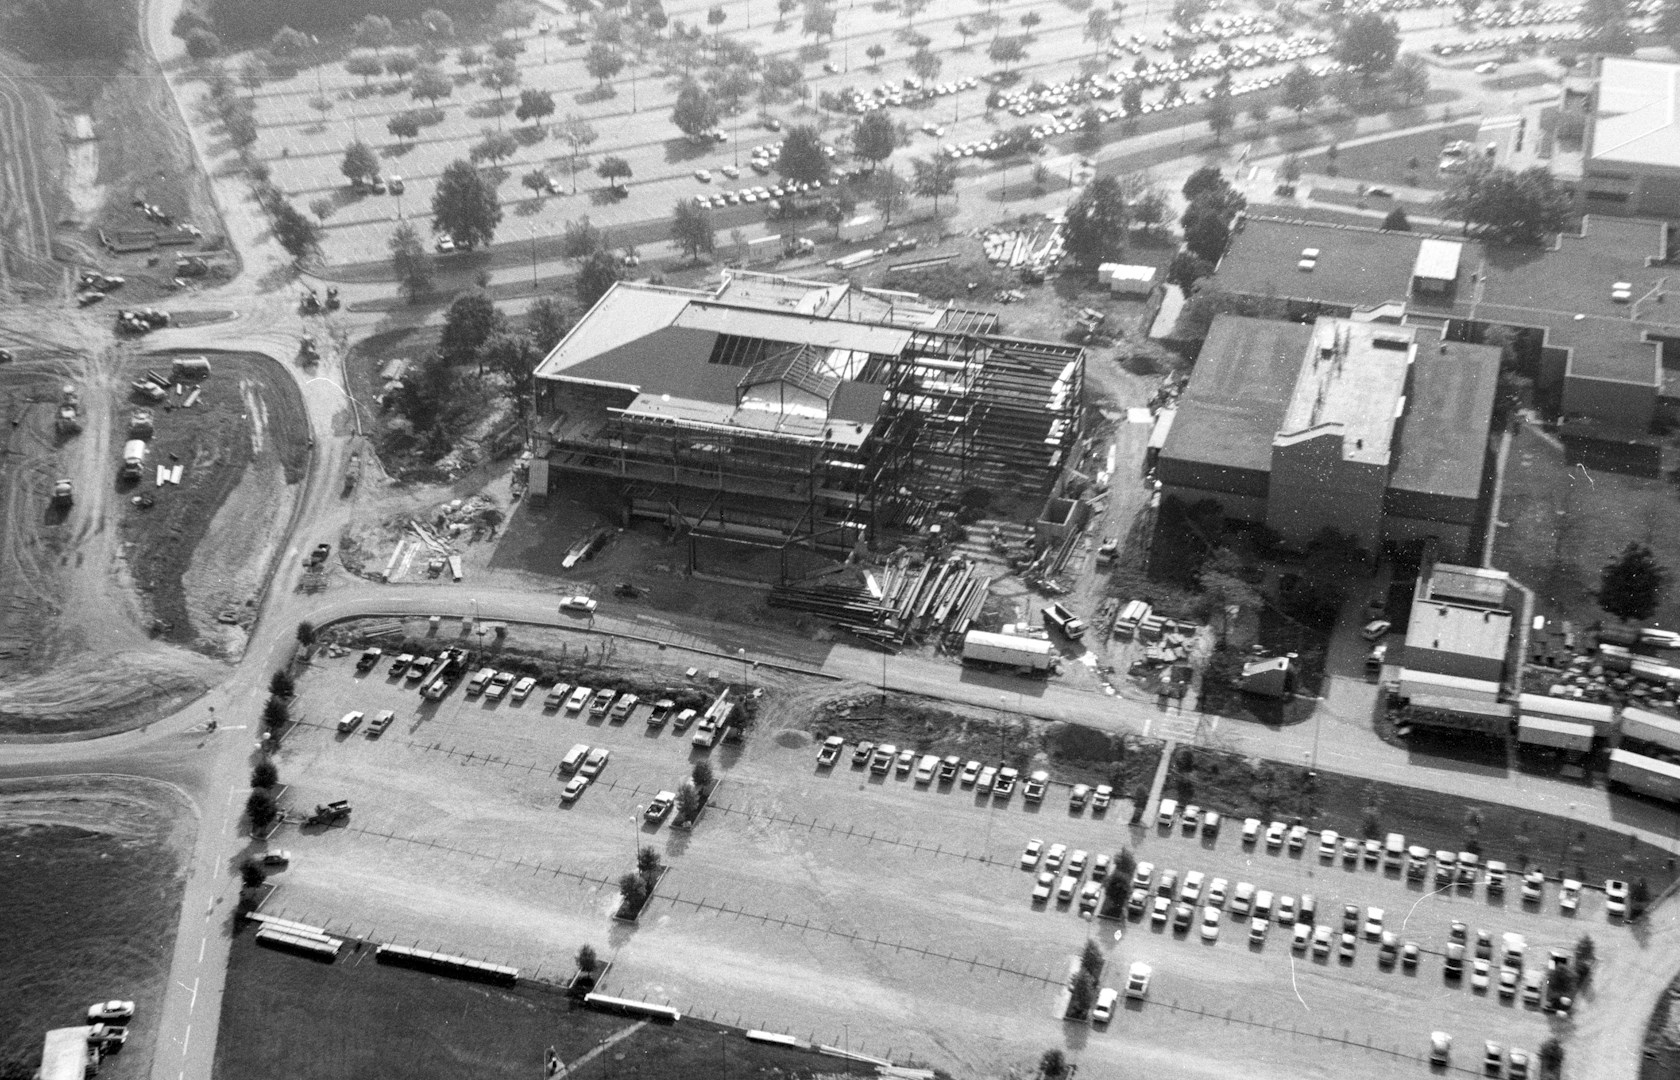 horiz_health professions  aerial in 1993